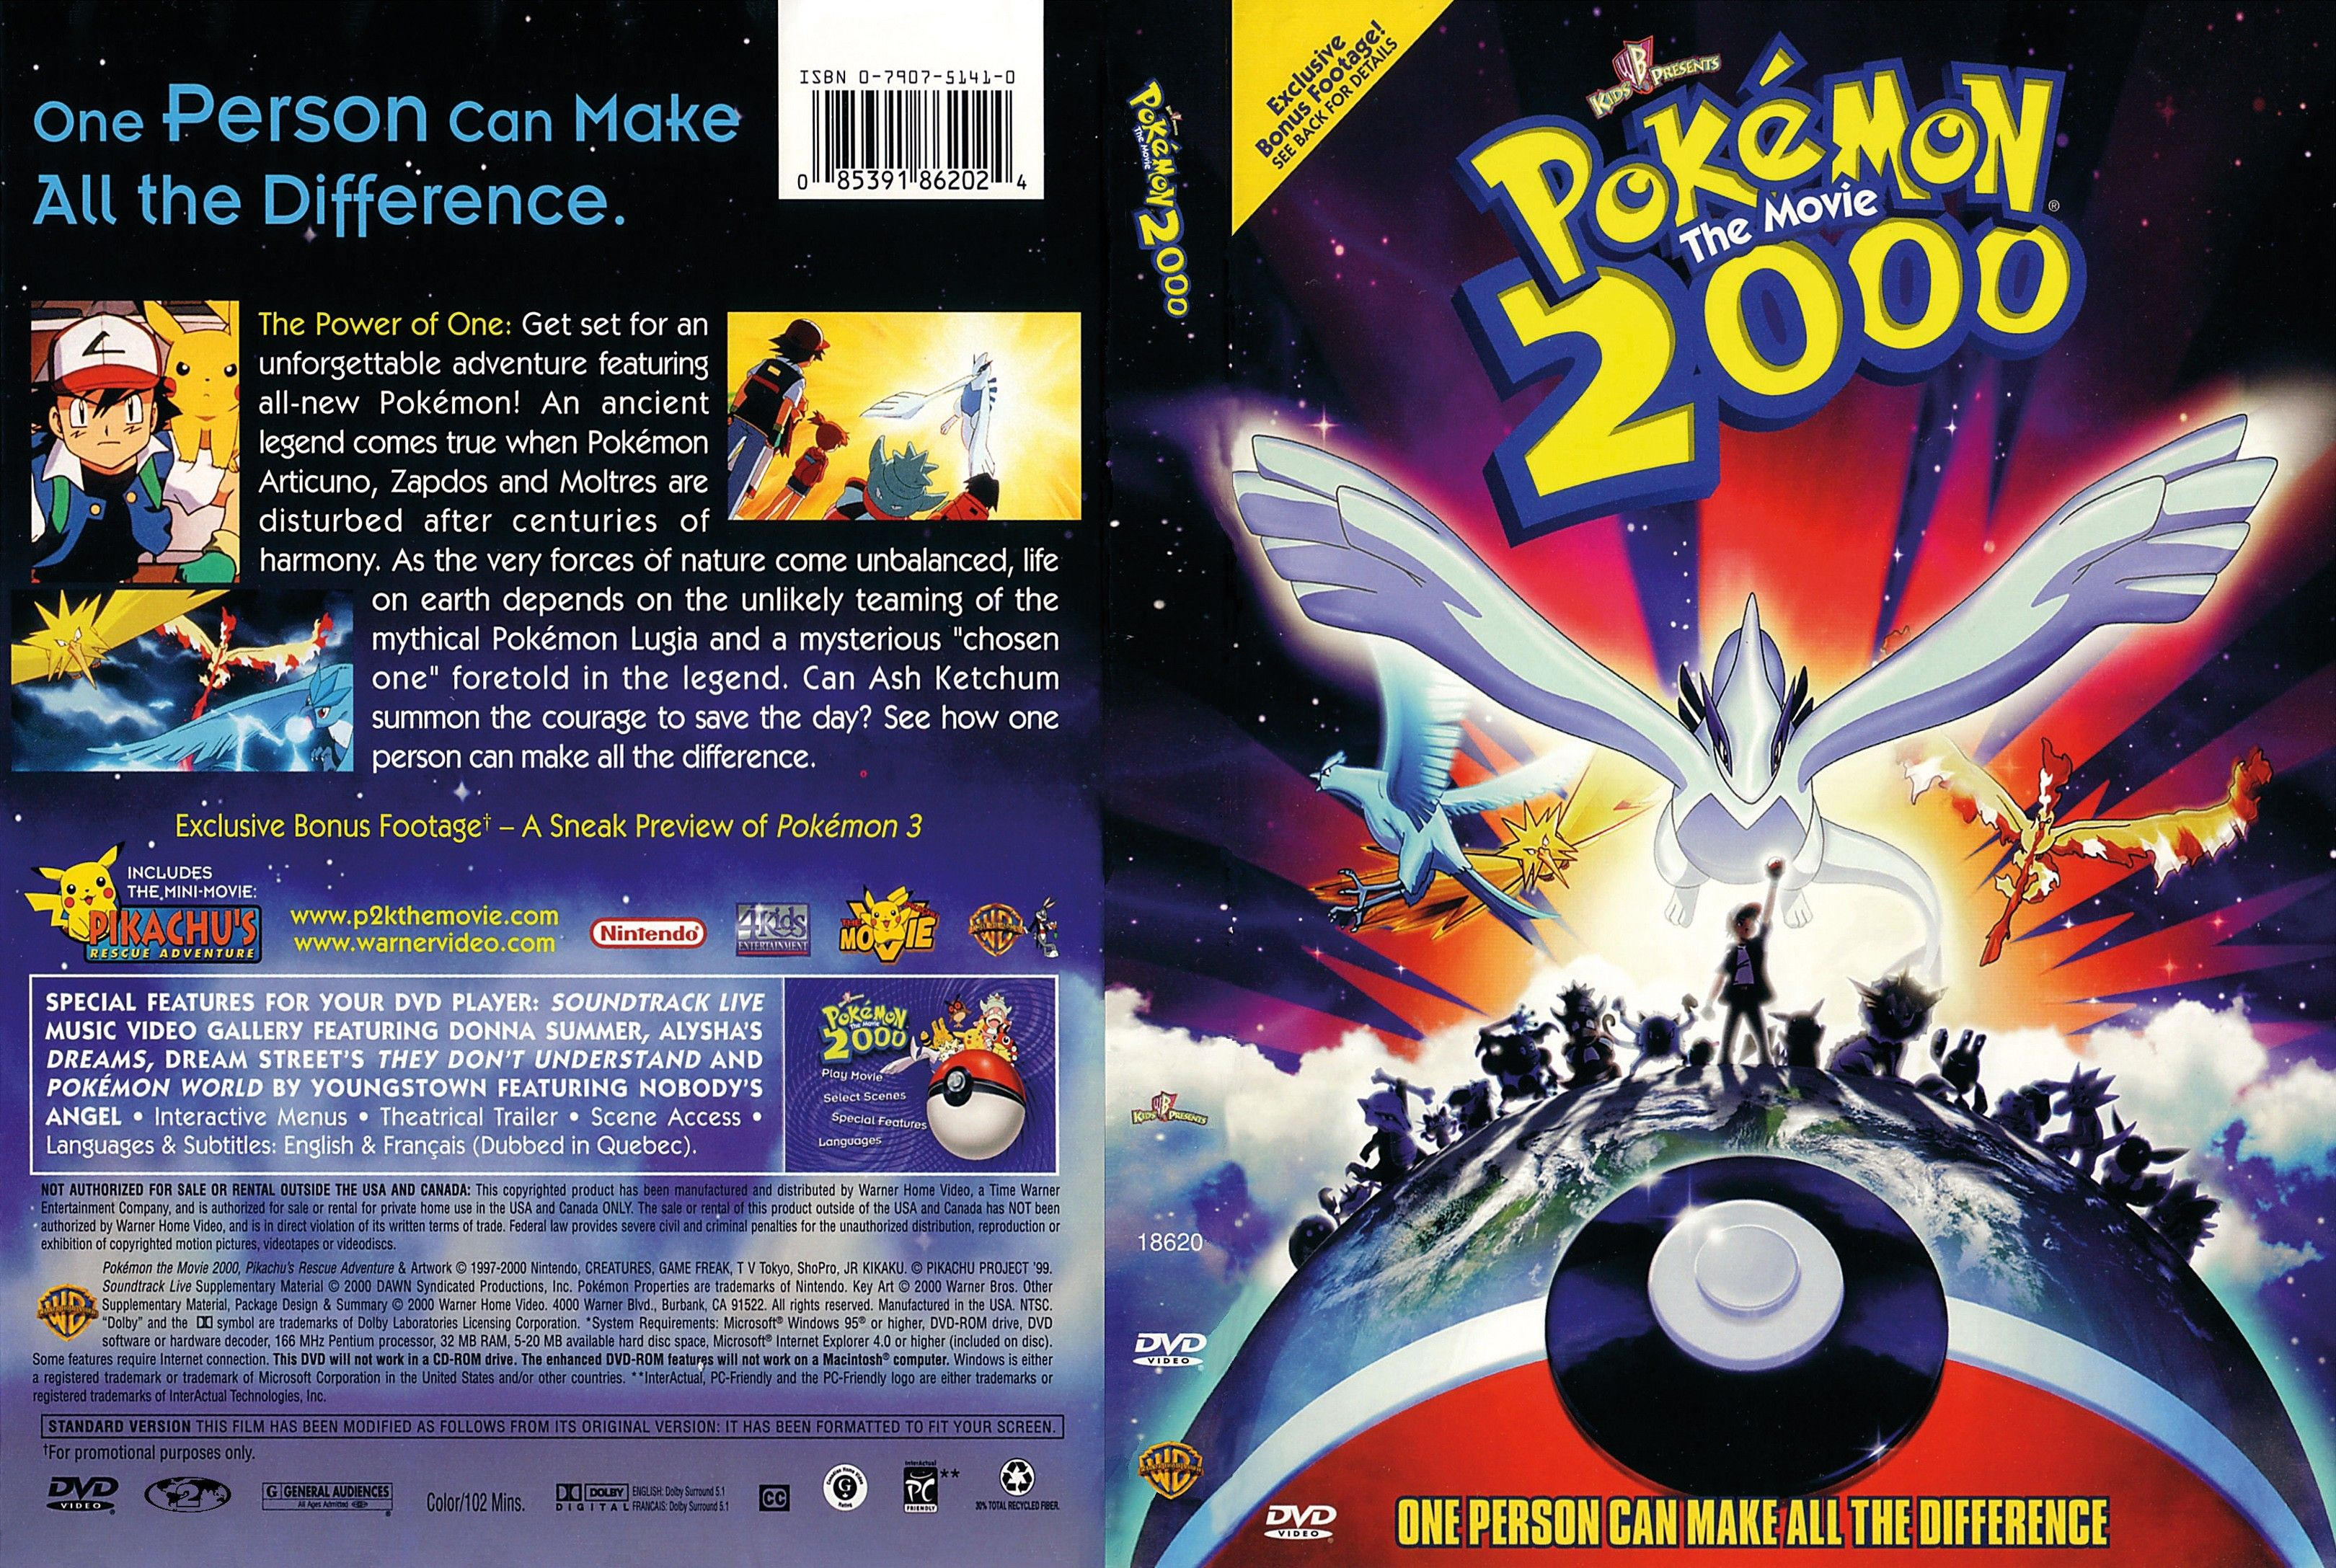 Pokemon The Movie 2000 Dvd Us Dvd Covers Cover Century Over